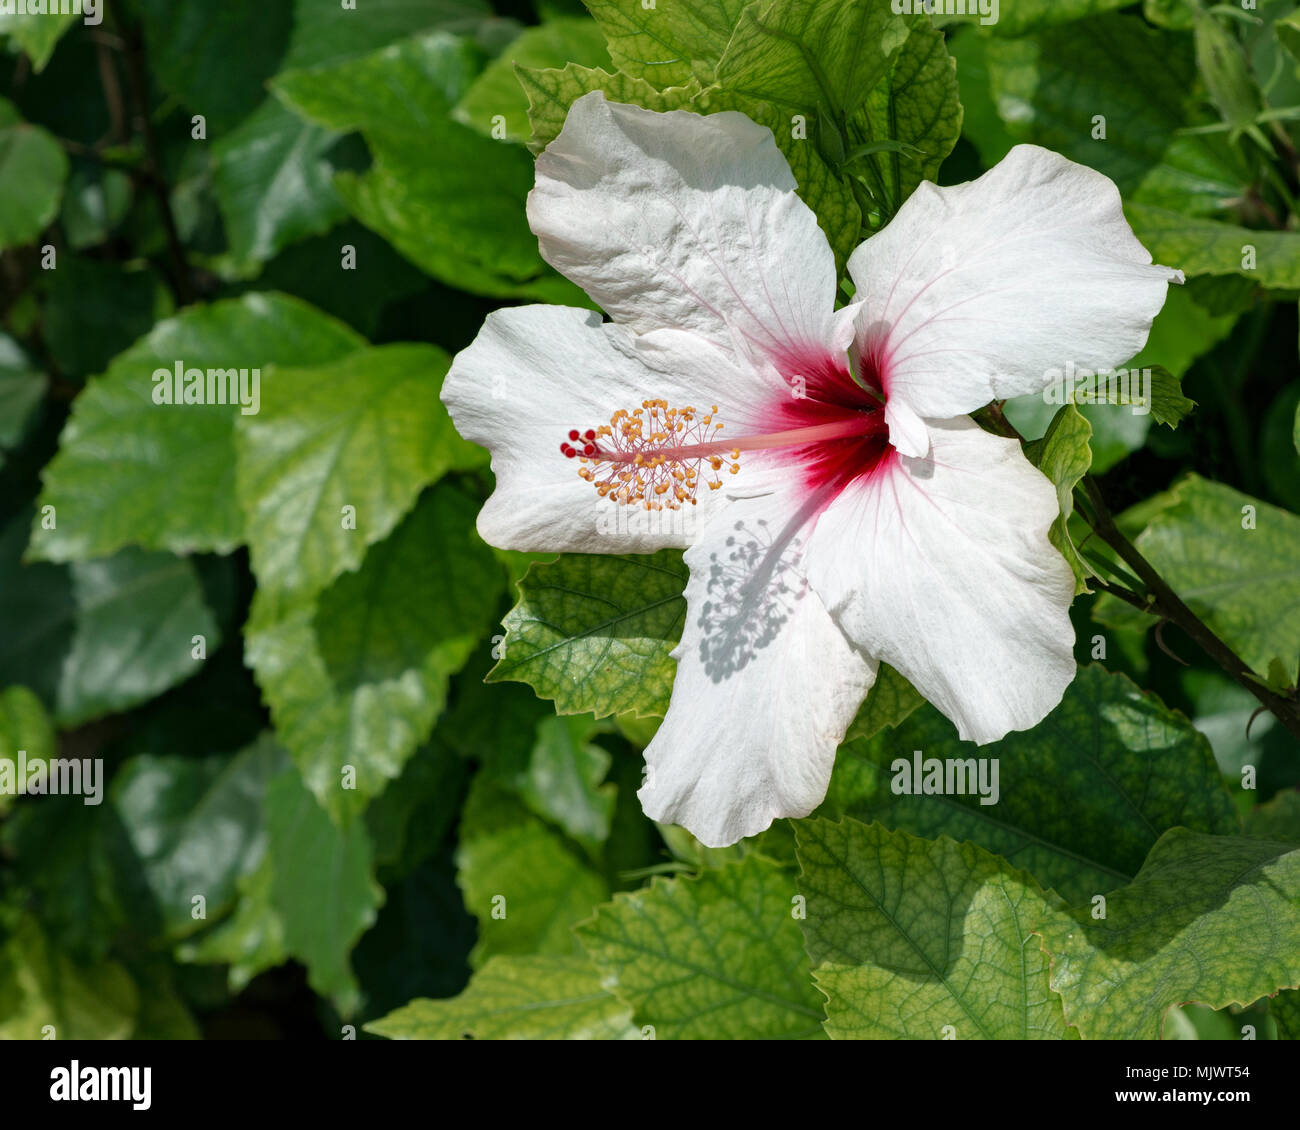 White And Red Hibiscus Flower On A Bush Showing Chlorosis Disease